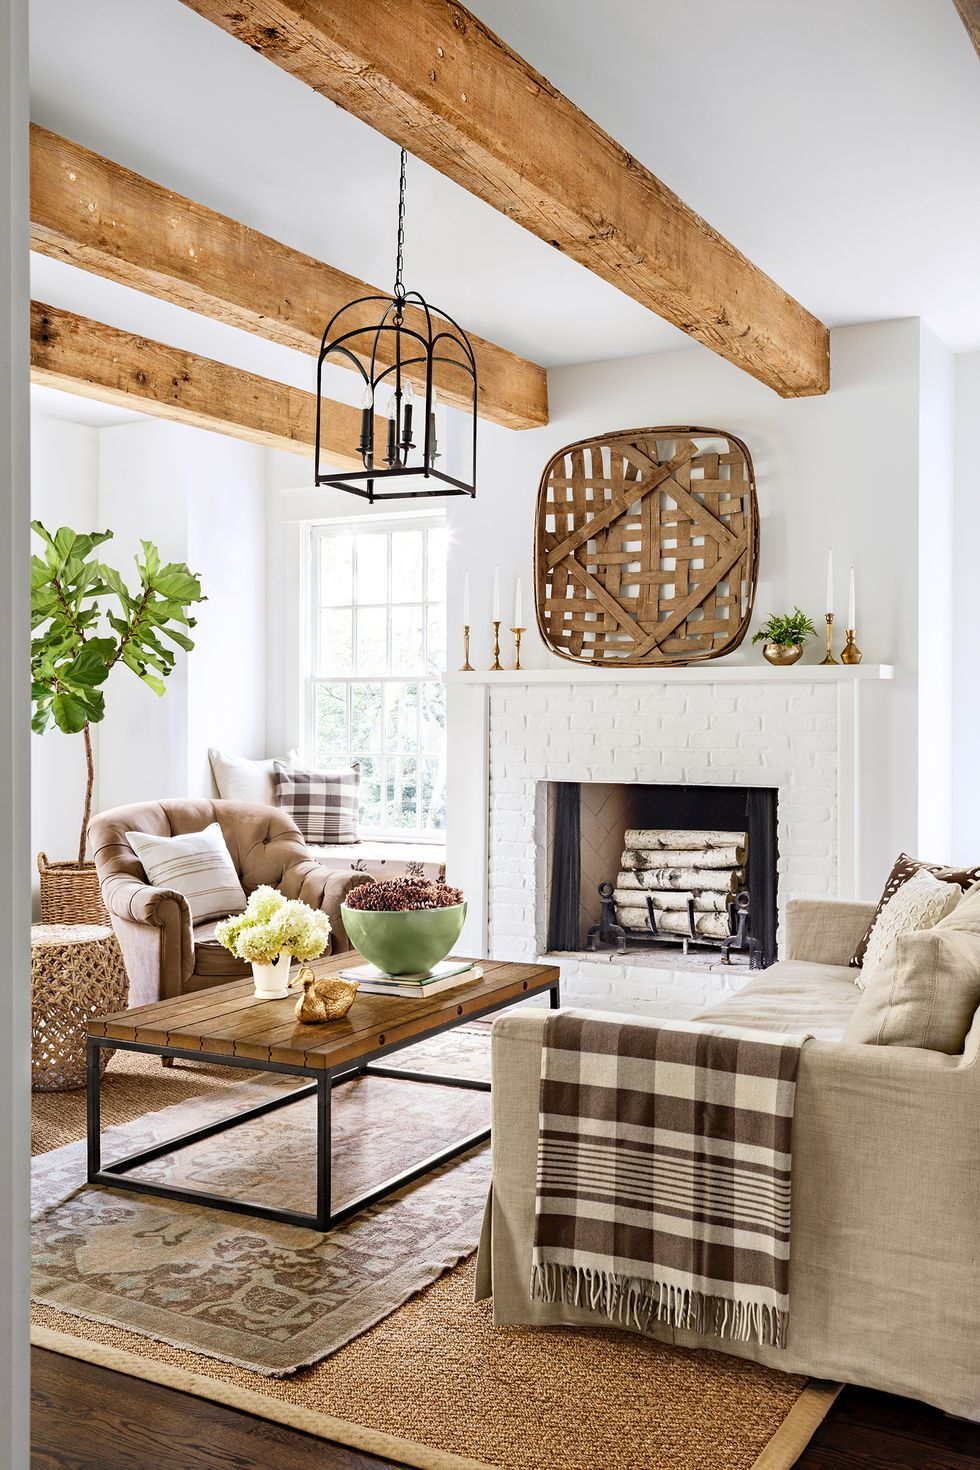 55 Best Living Room Ideas - Stylish Living Room Decorating Designs